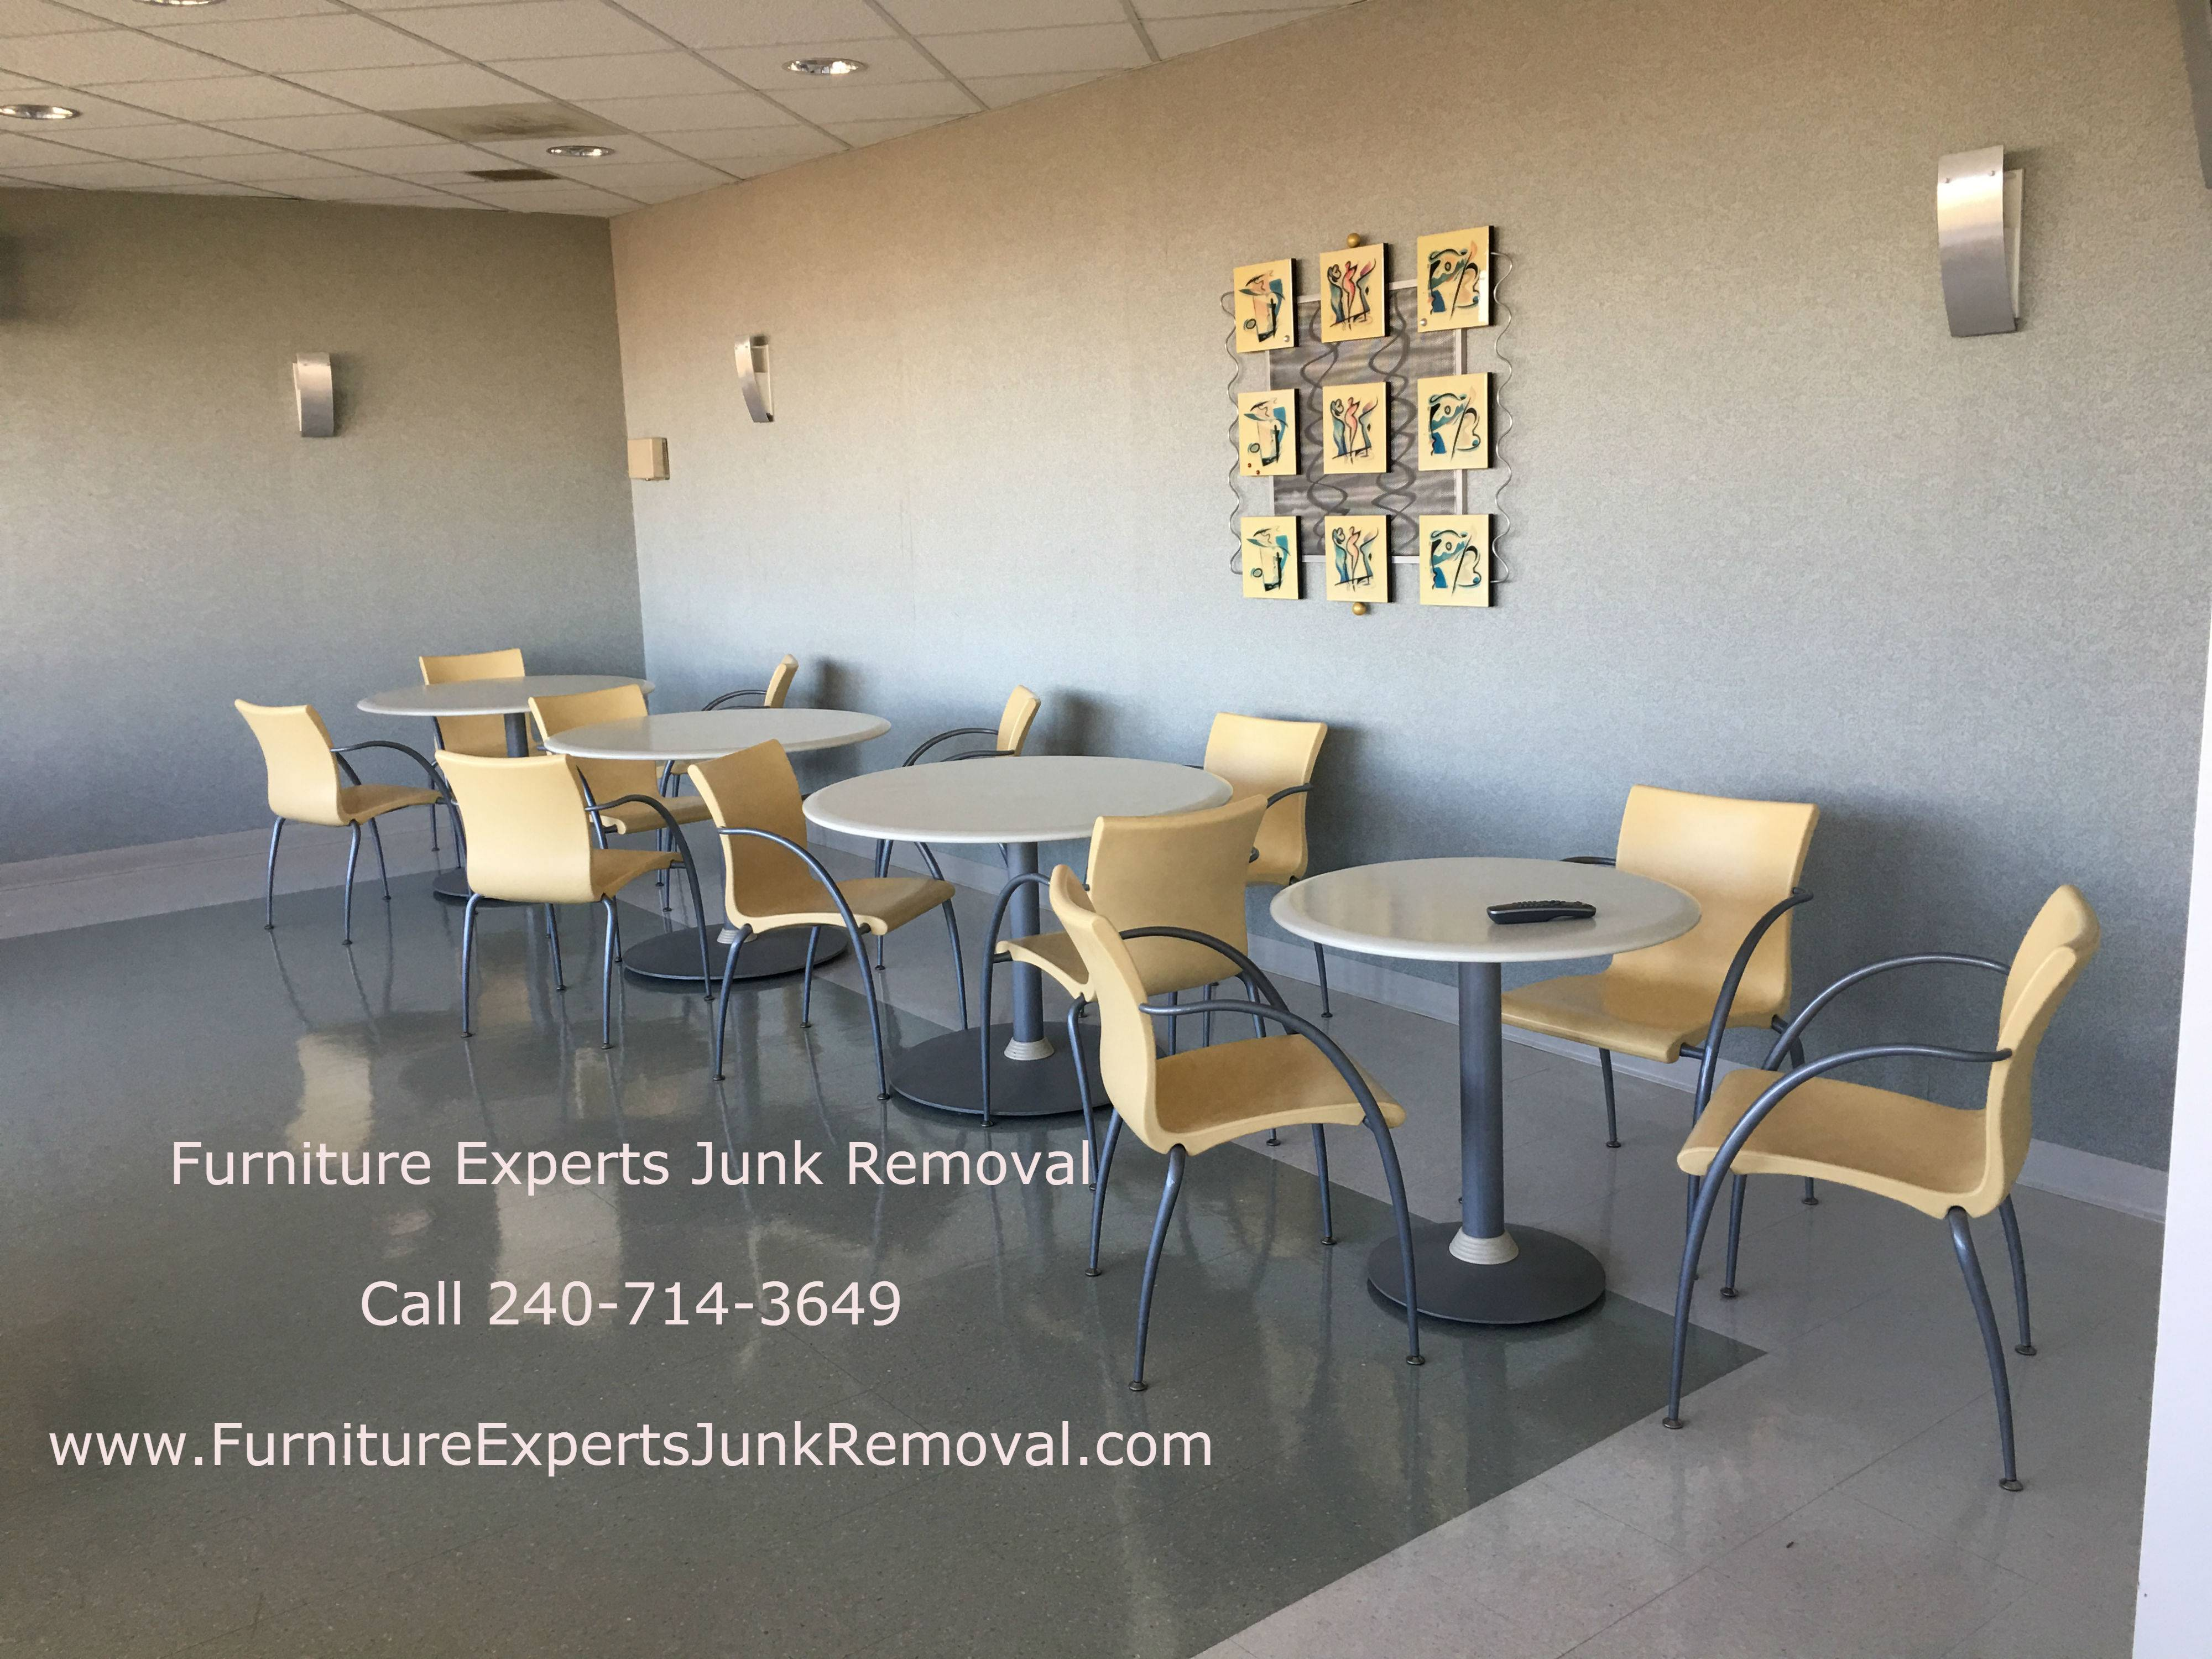 Junk office furniture removal in Silver spring MD